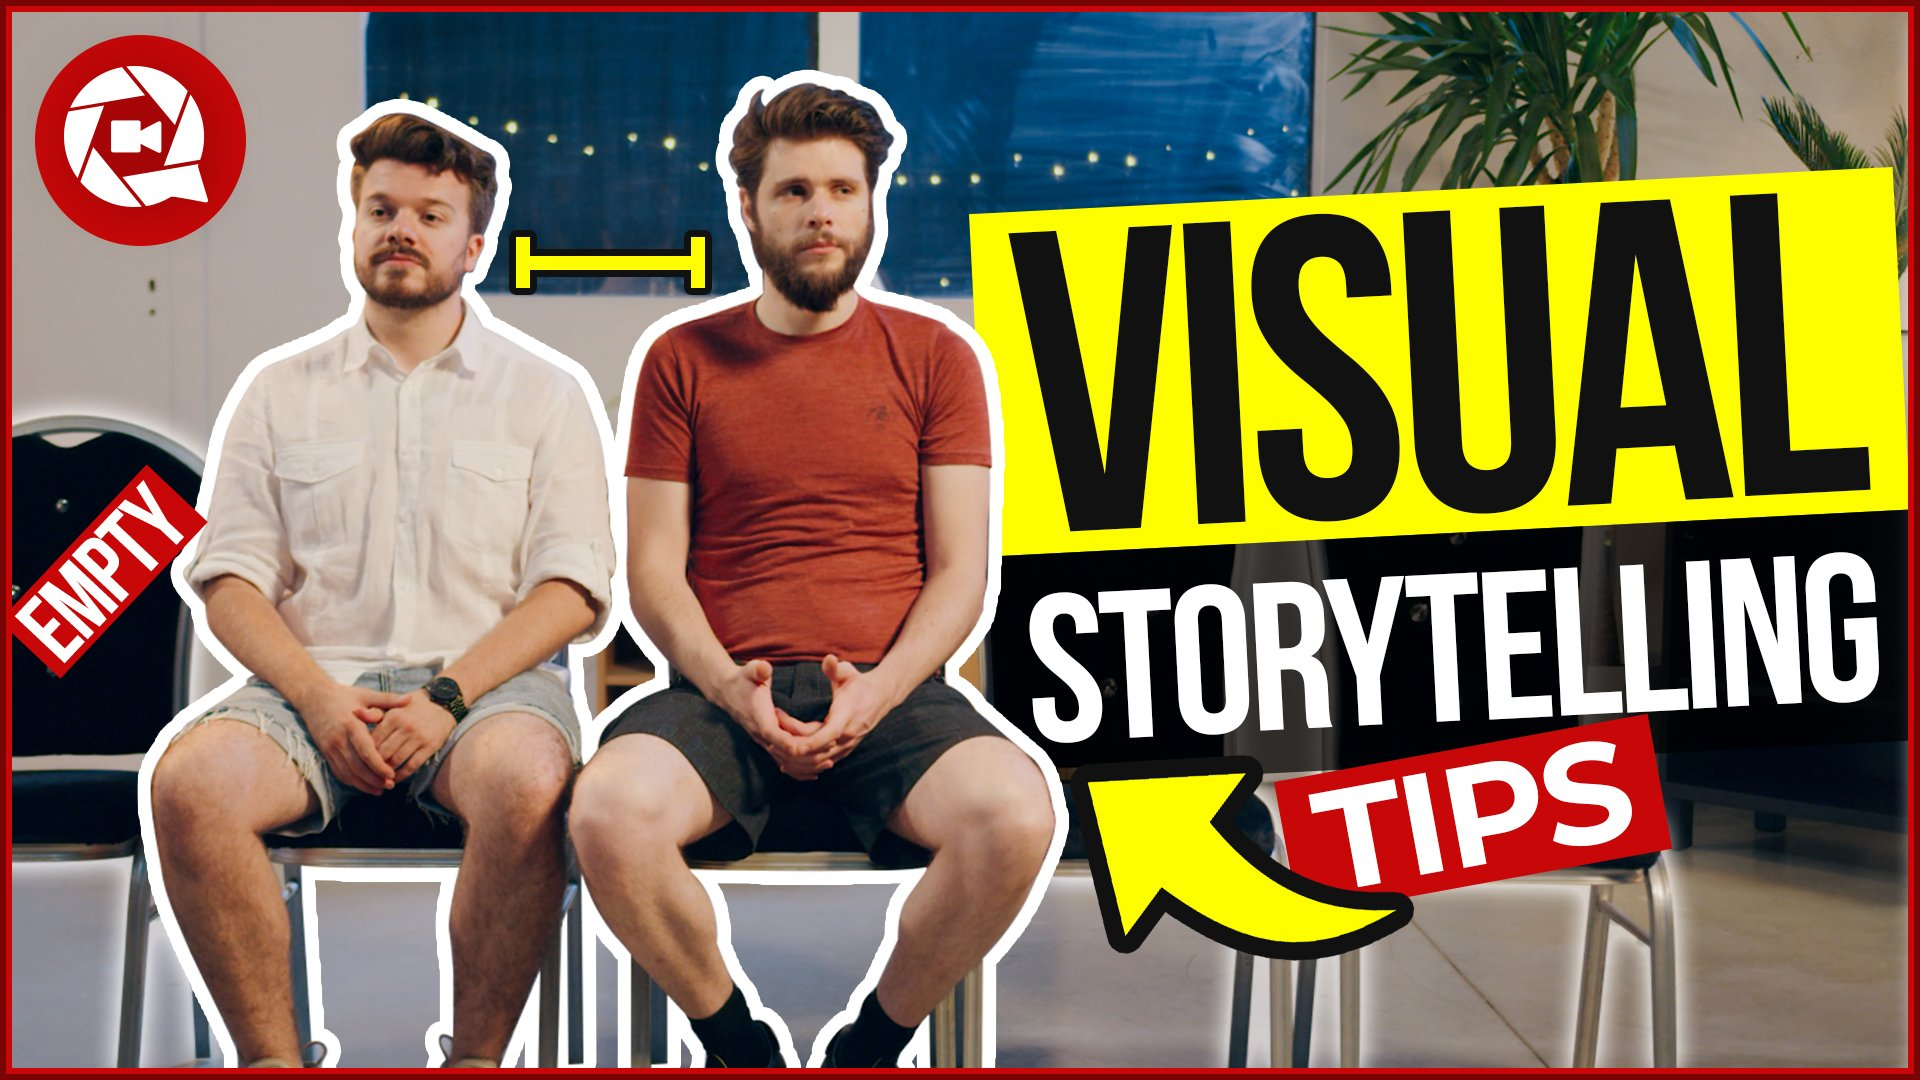 Visual-Storytelling-Tips